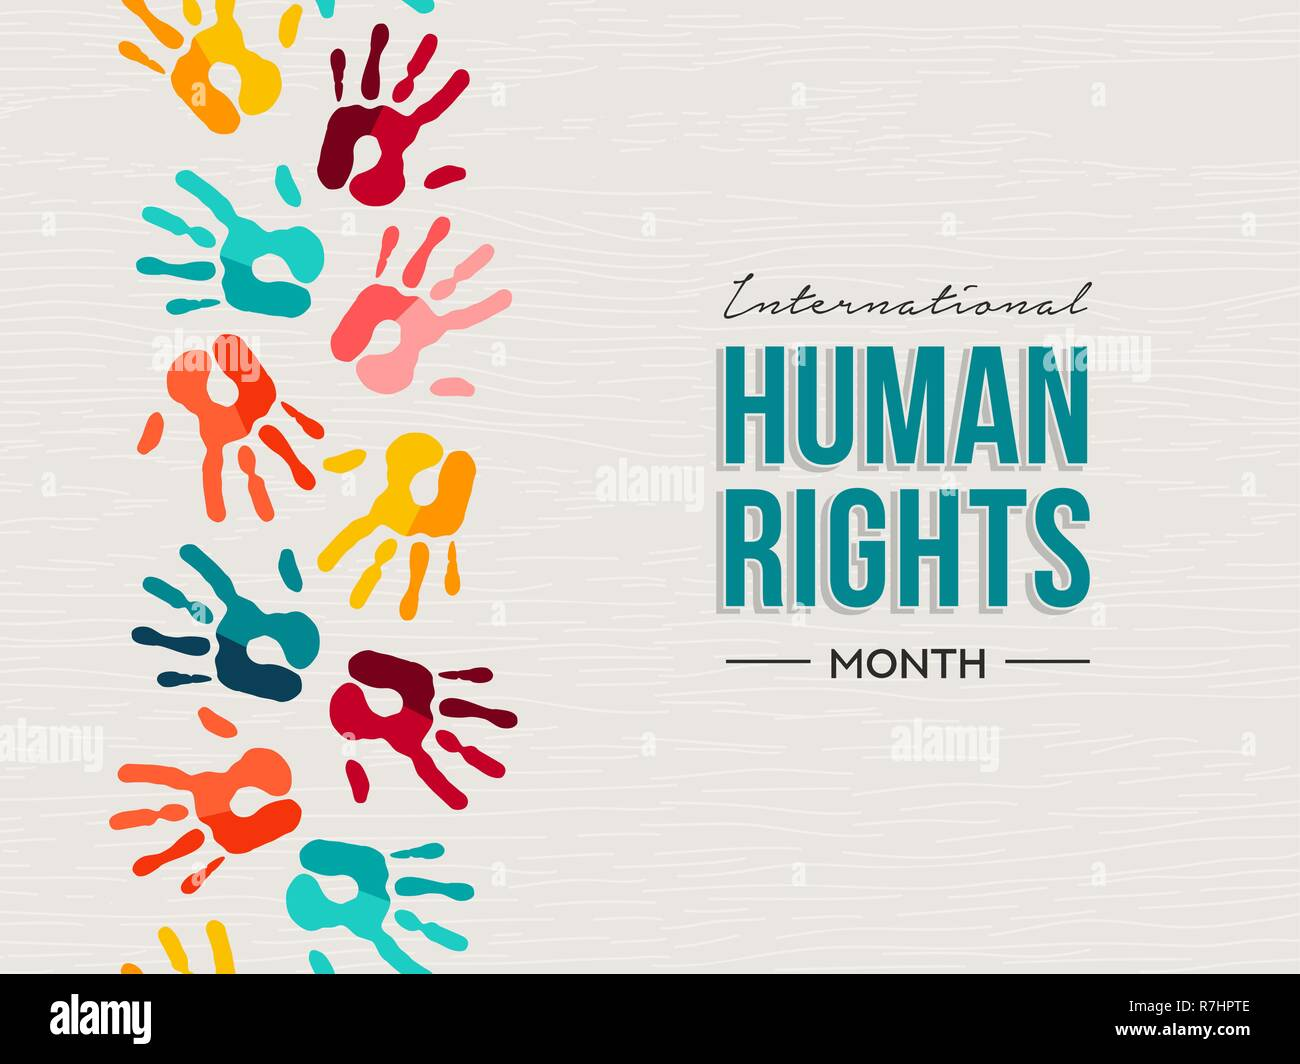 f5fa659f79d2 International Human Rights day illustration for global equality and peace  with colorful people hand prints